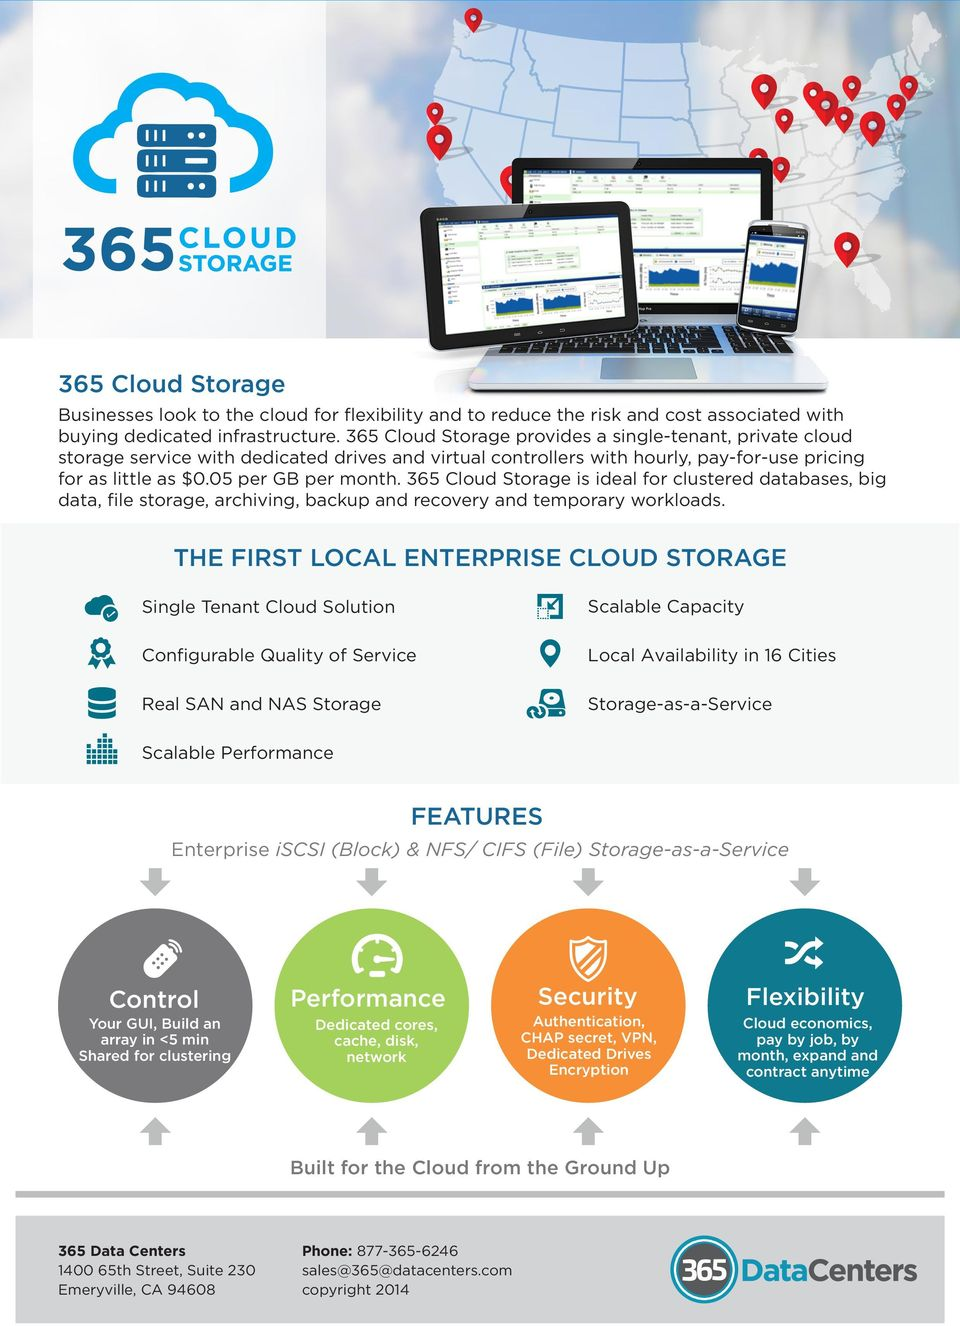 365 Cloud Storage is ideal for clustered databases, big data, file storage, archiving, backup and recovery and temporary workloads.